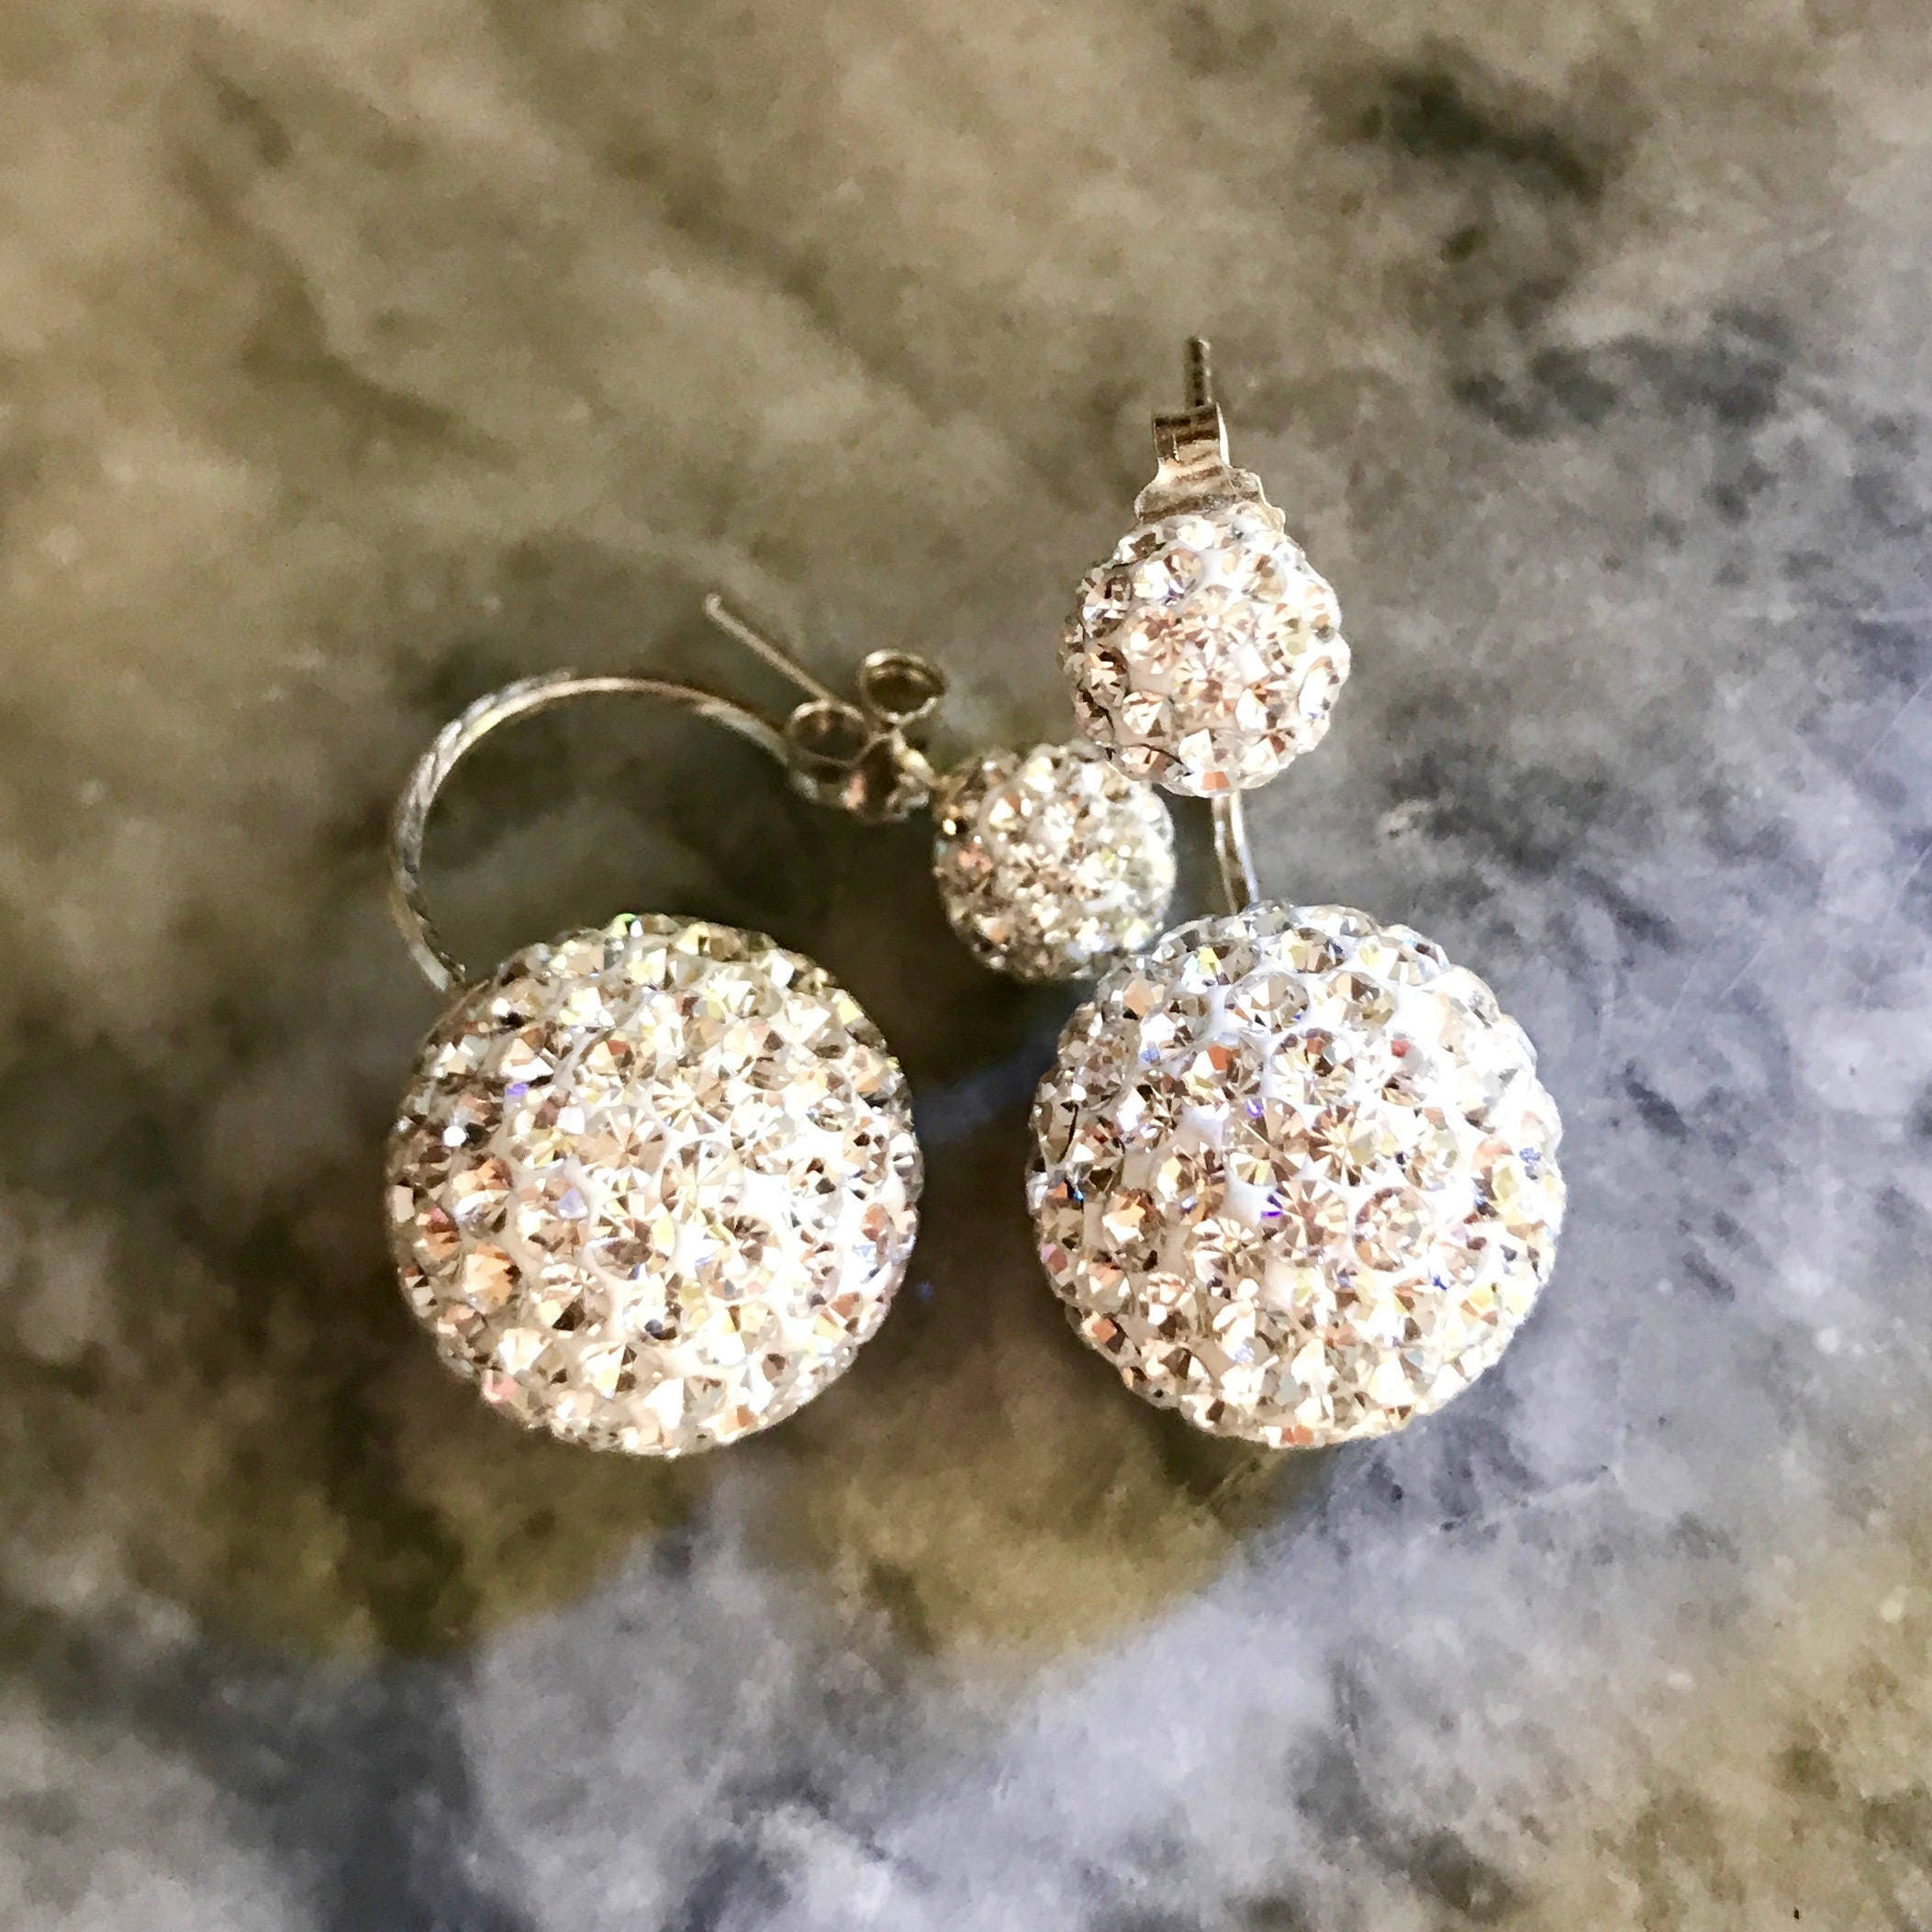 pinterest york earrings images best spade new on sparkly stud jewelry glitter gifts bridal bridesmaid kate dressforwedding